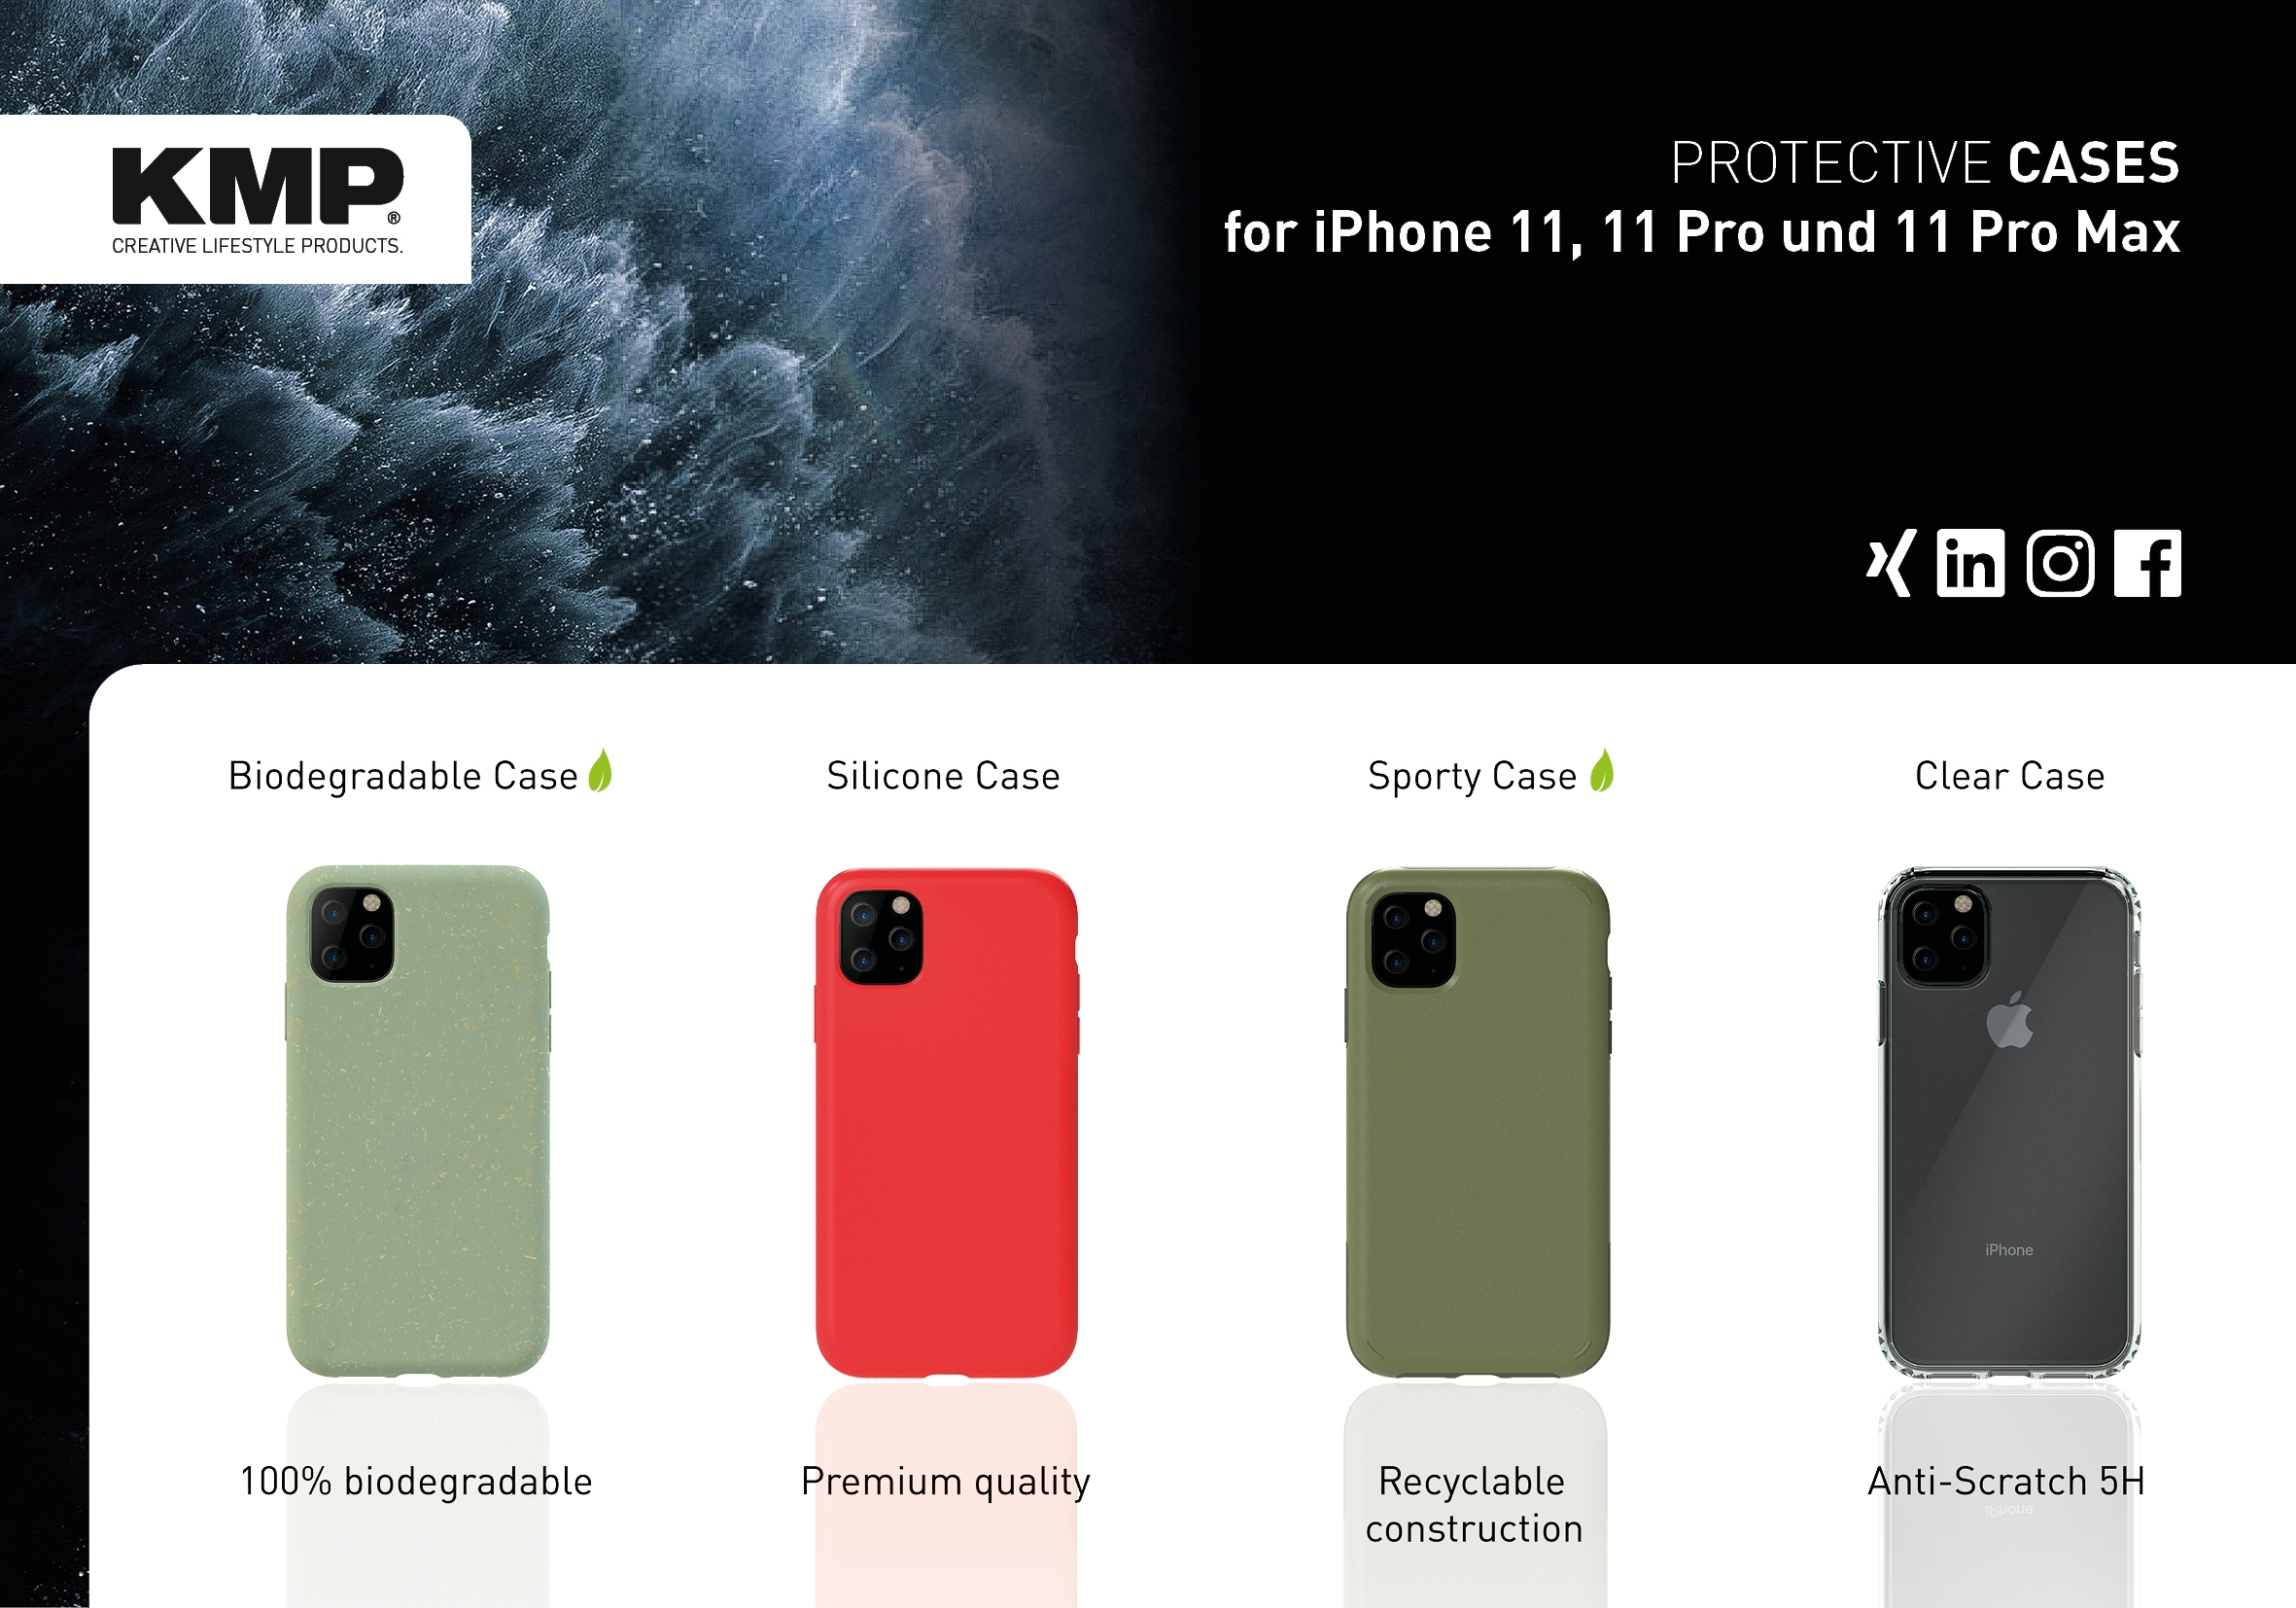 Protetive Cases for iPhone 11, iPhone 11 Pro, iPhone Pro Max